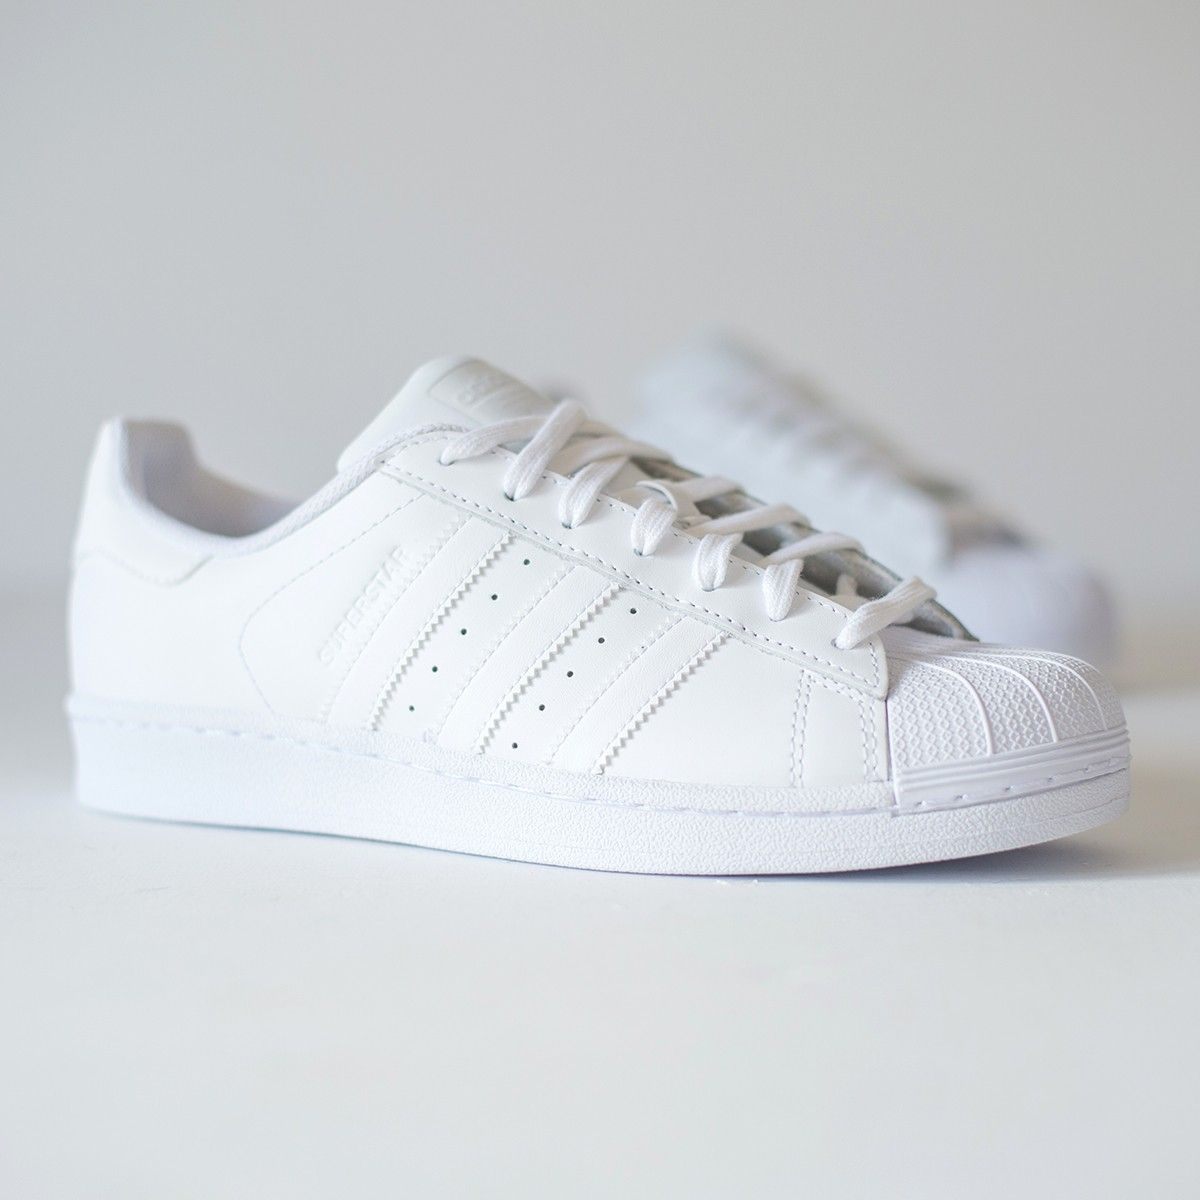 2a2ce443b8 ADIDAS - B23641 SUPERSTAR FOUNDATION J - white sneakers